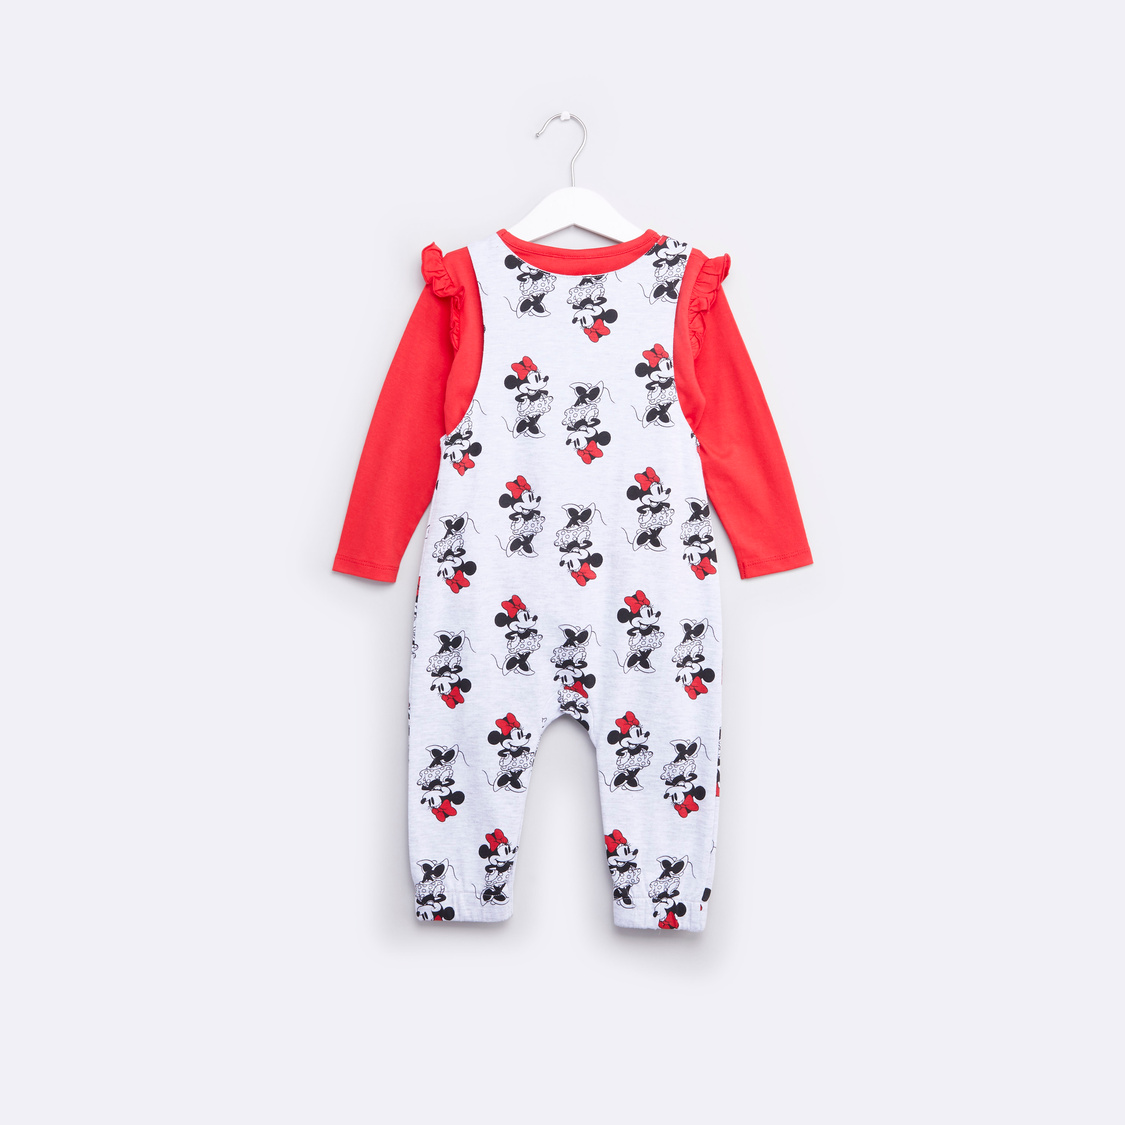 Plain Round Neck T-shirt with Minnie Mouse Printed Dungarees